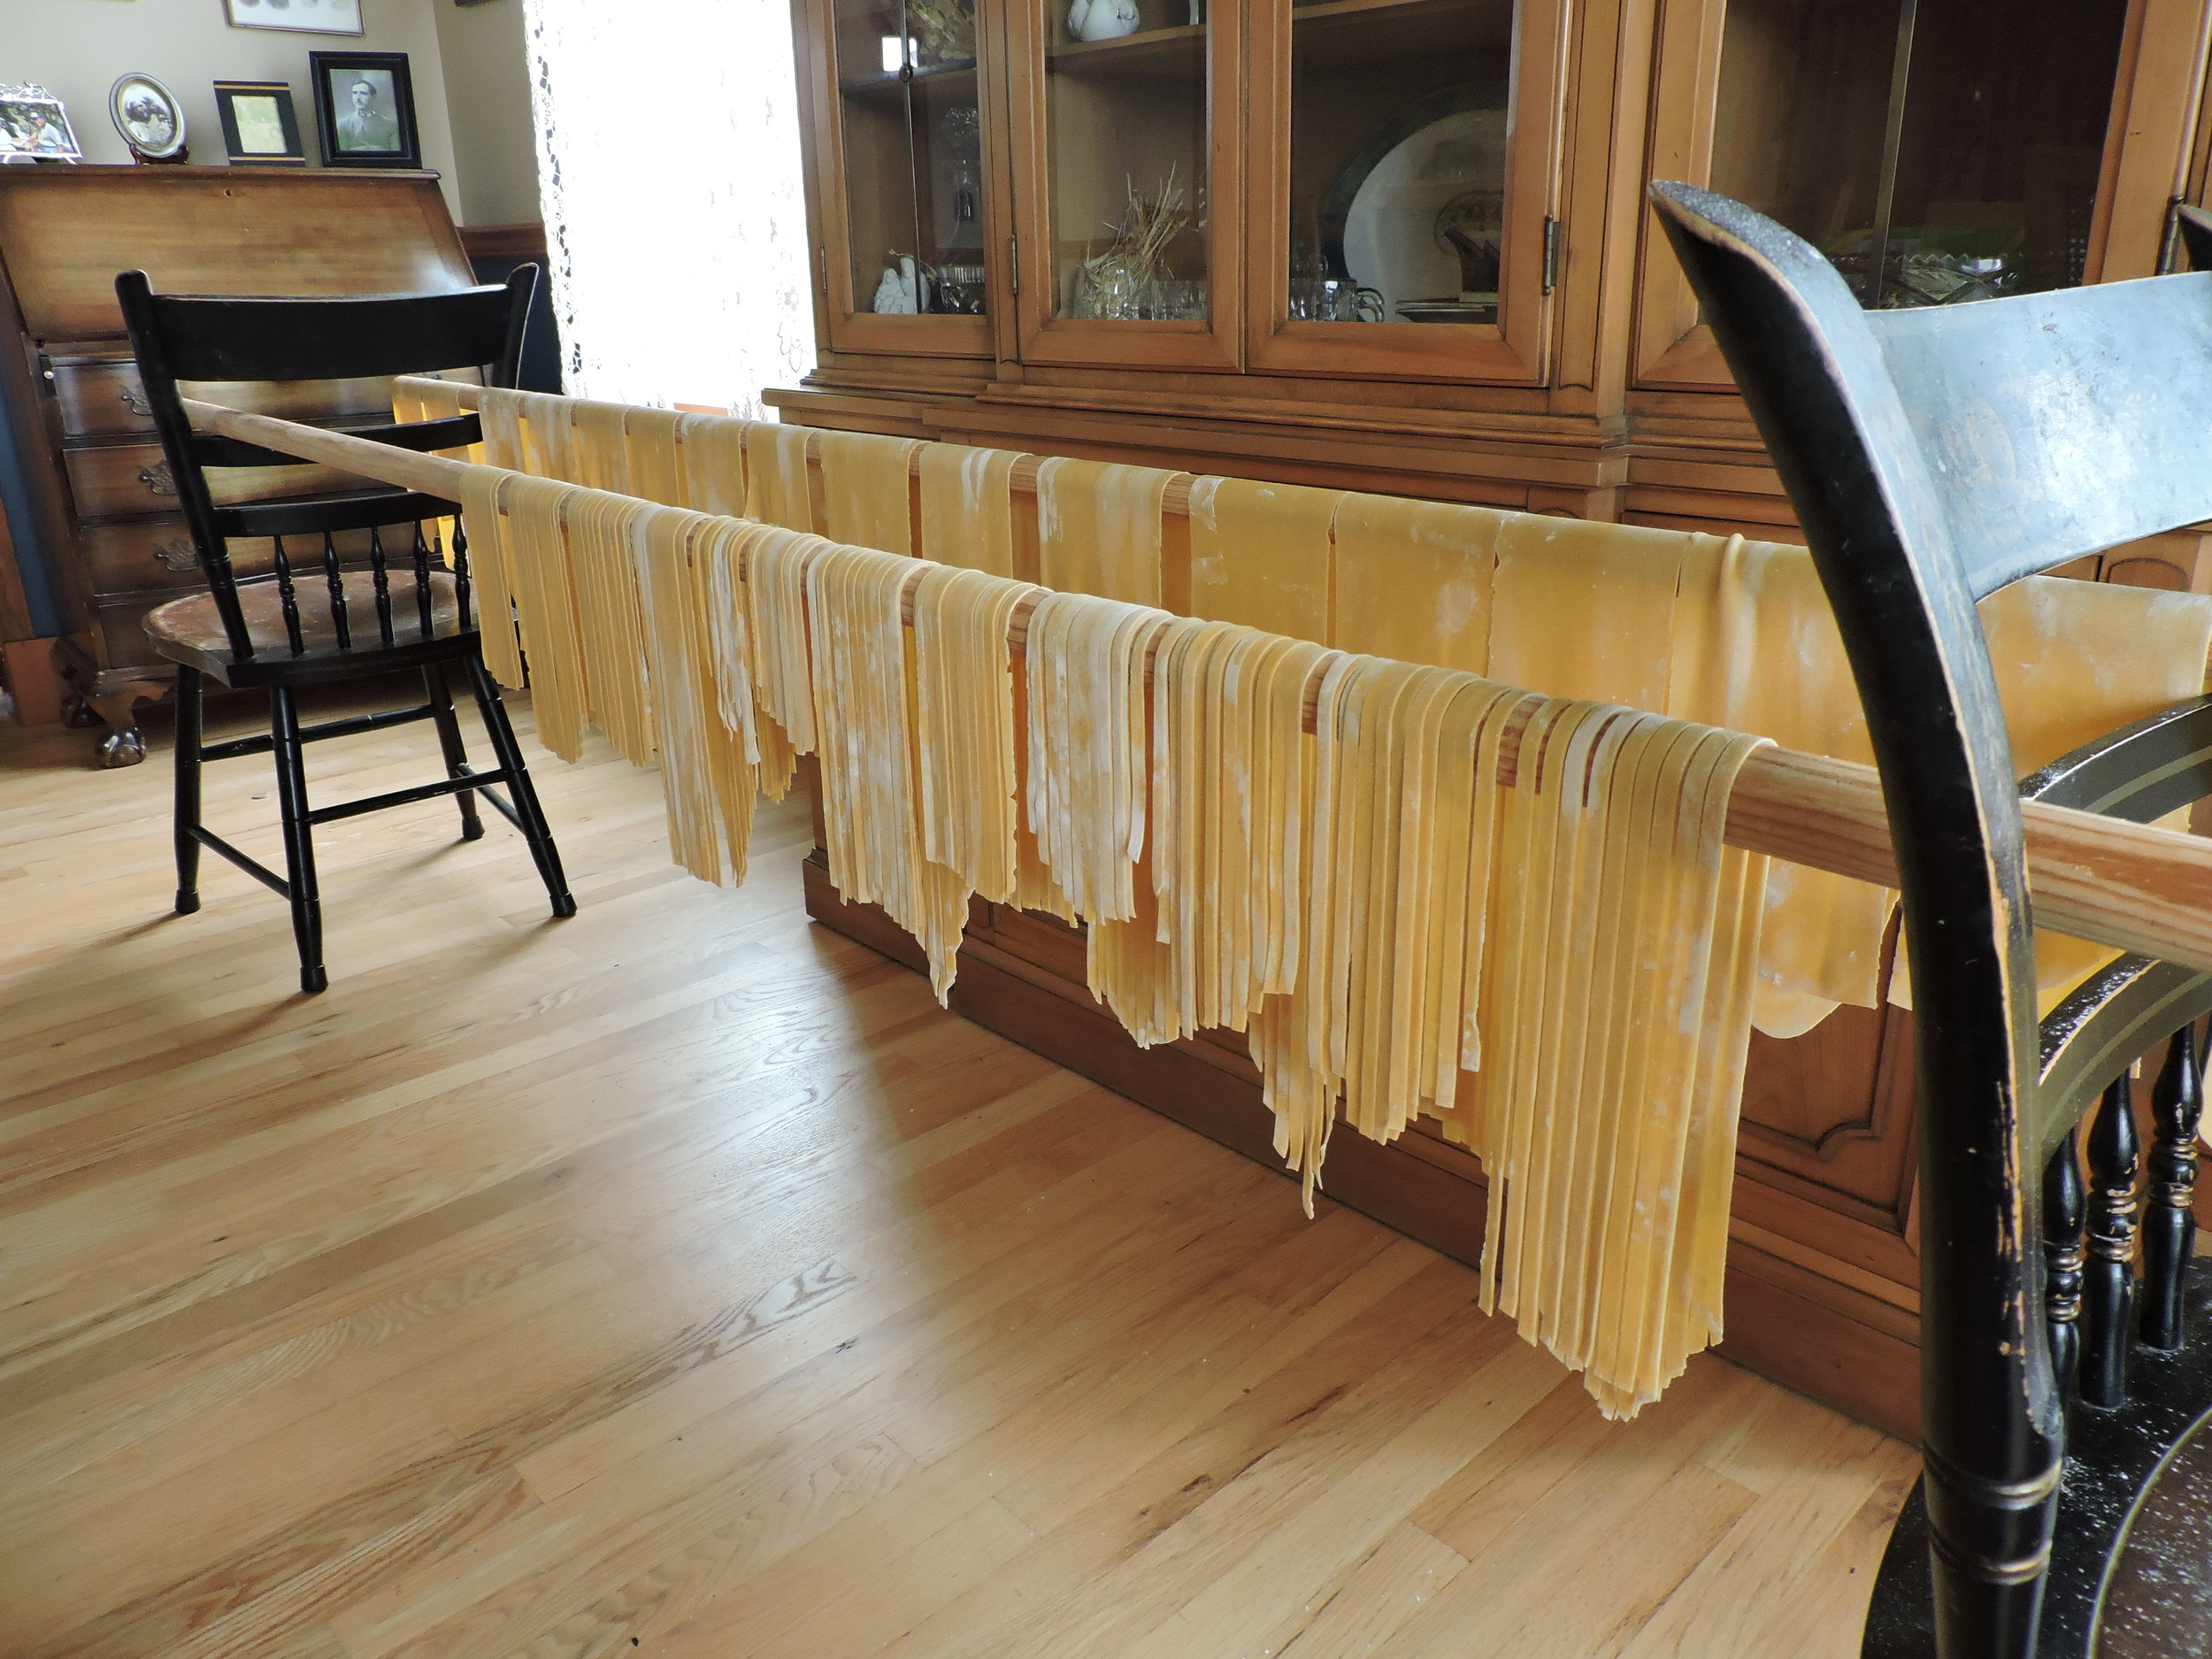 Both cut strands and pasta sheets drying midway through cutting pasta. I'm doing three batches here as I was making two for the family and one as a postpartum meal for a friend.